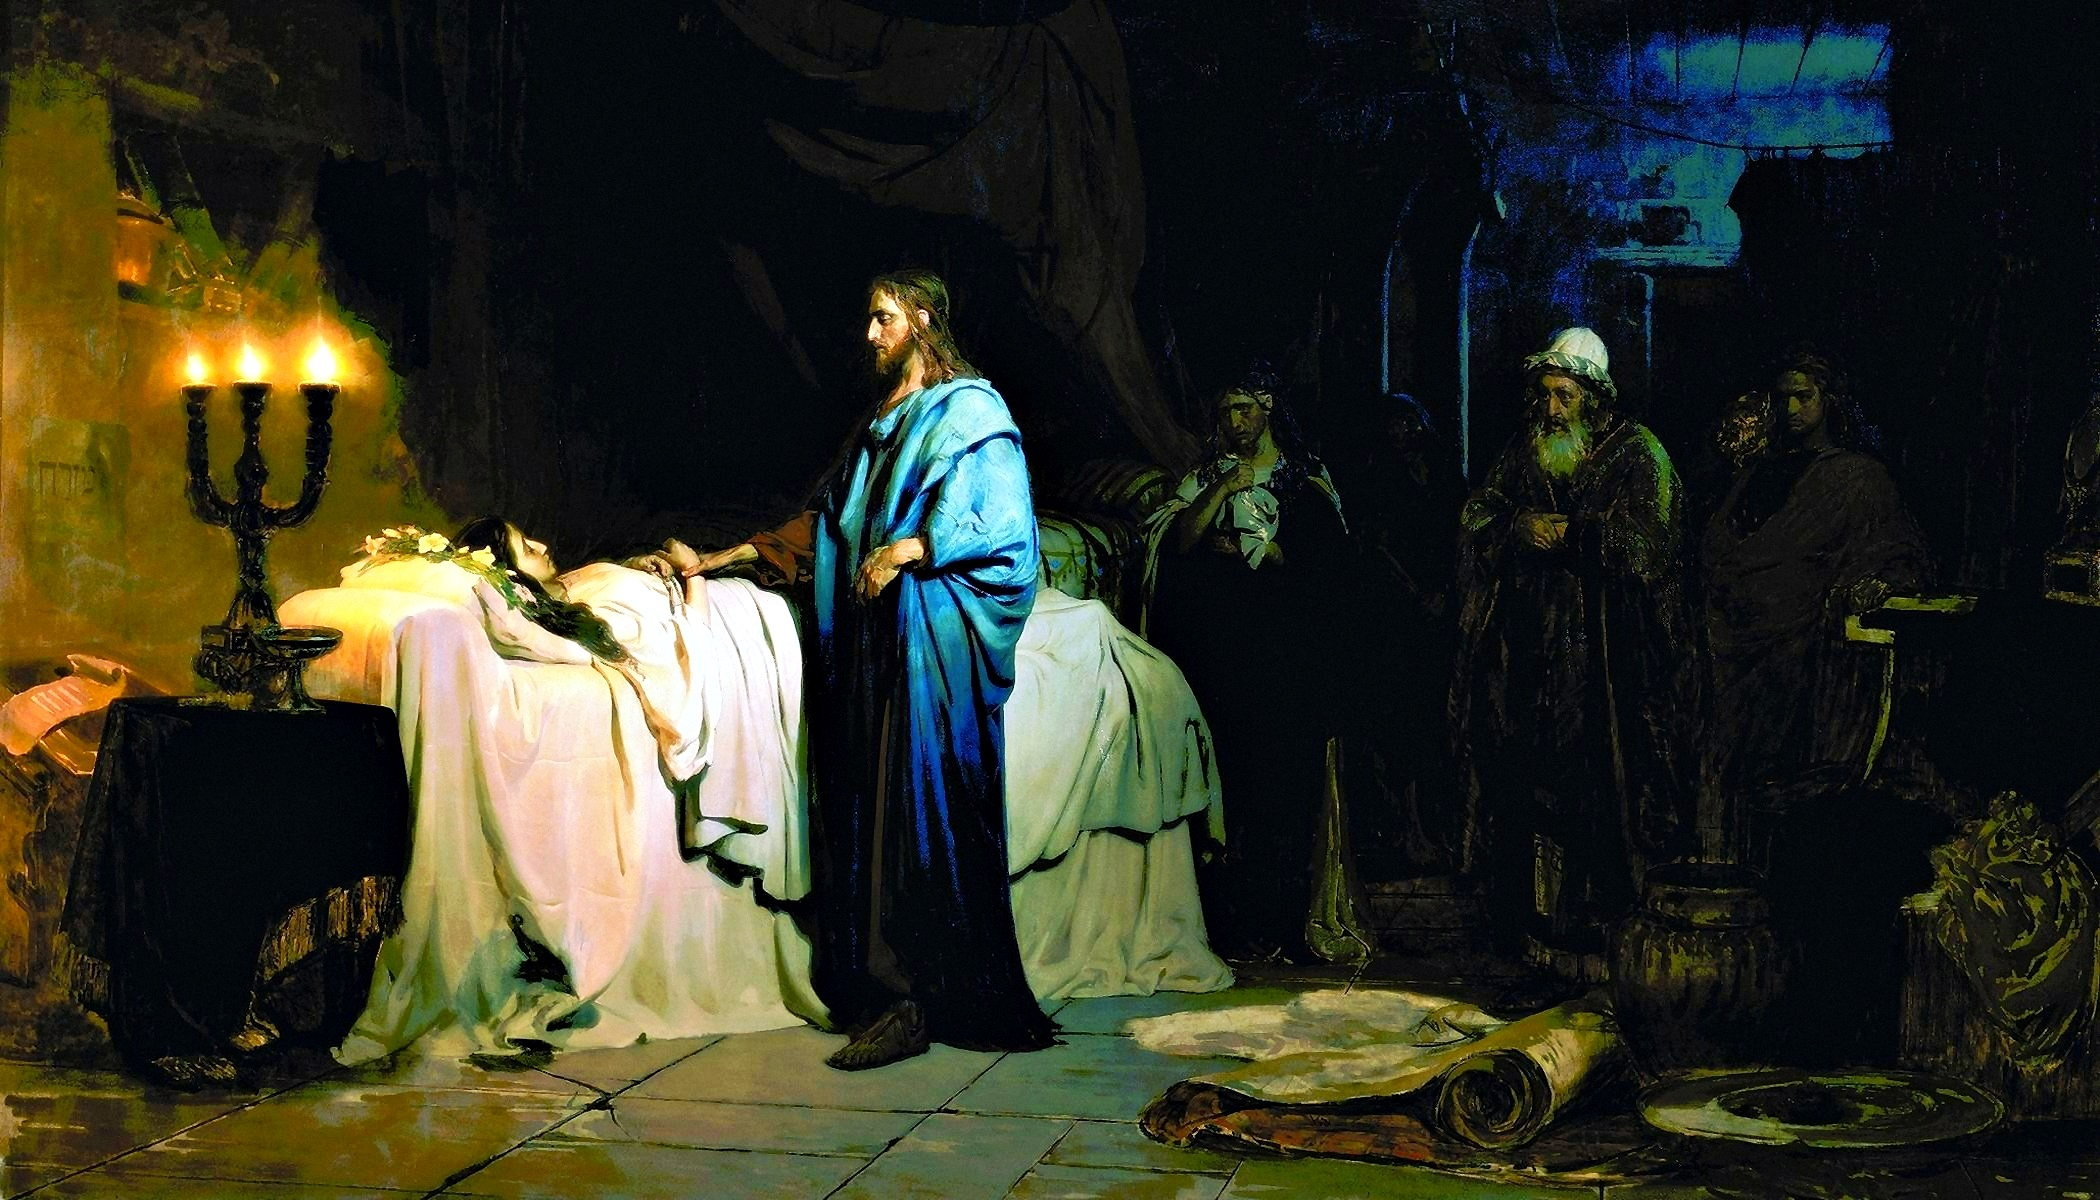 00 Ilya Repin. Christ Raises the Daughter of Jairus. 1871